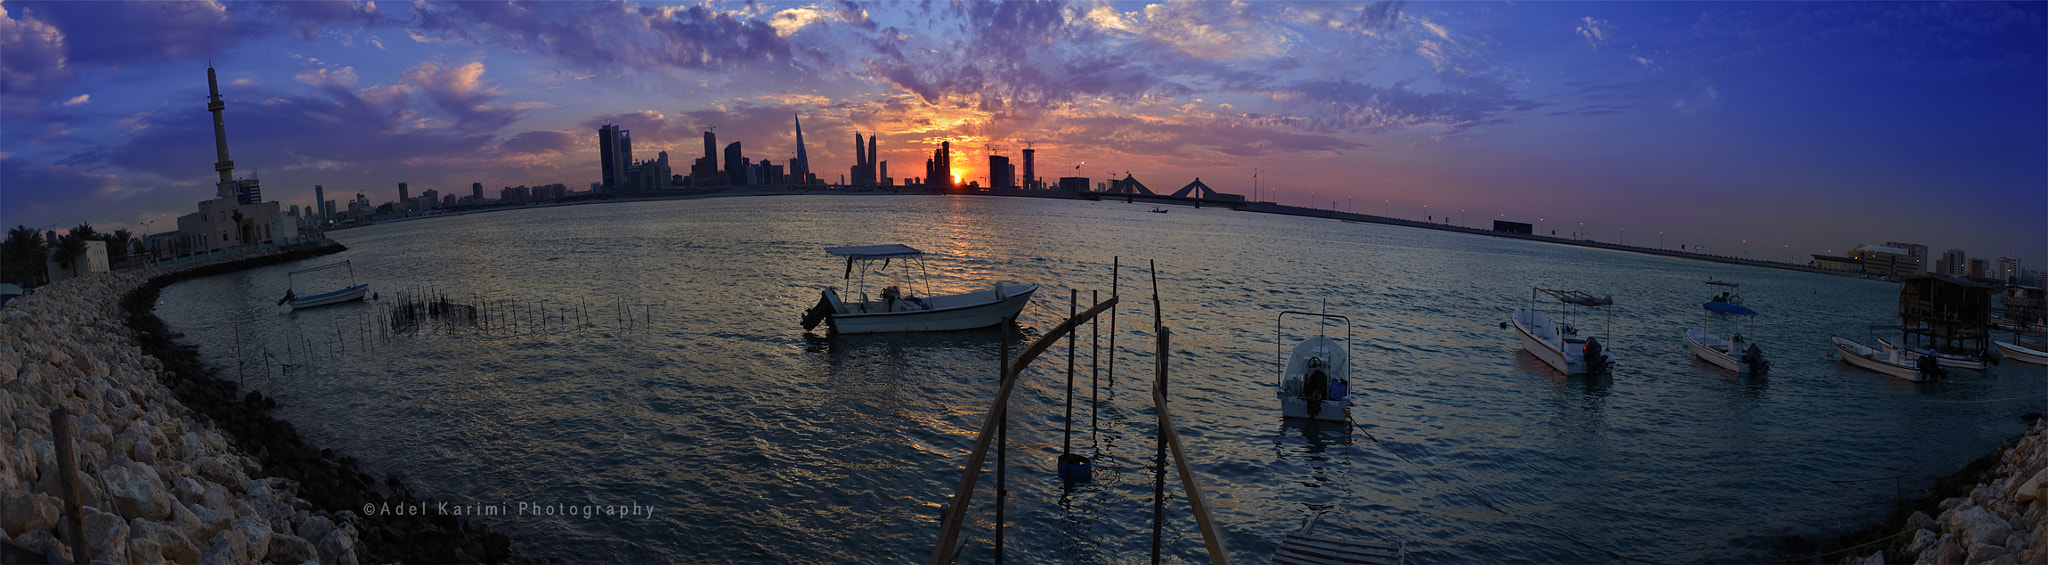 Photograph Sunset Panorama by Adel Karimi on 500px